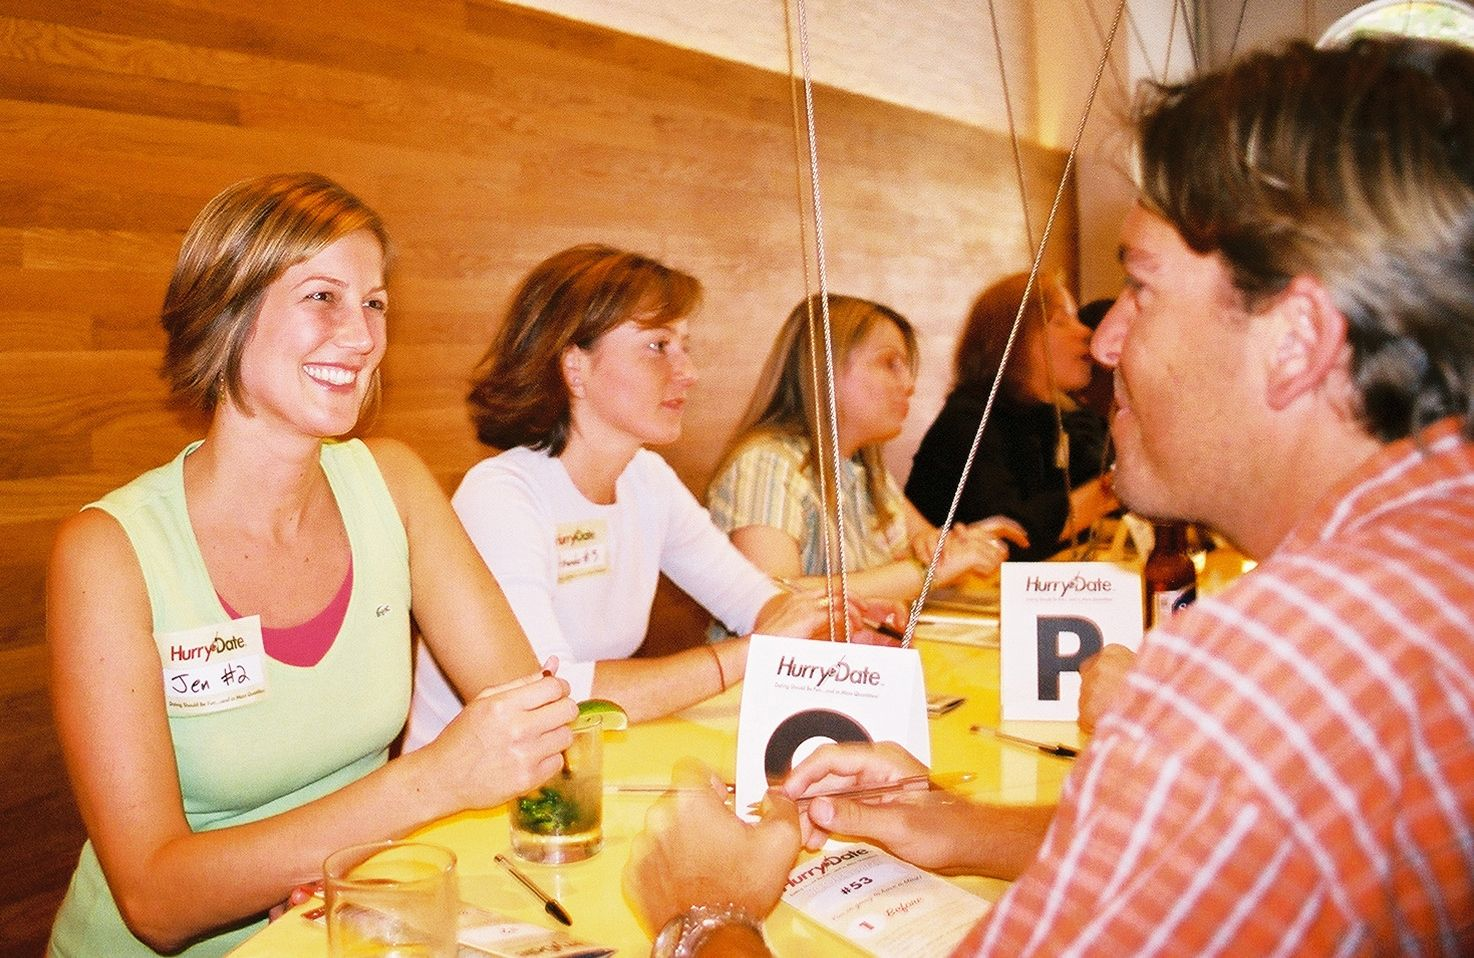 Speed dating events in philadelphia